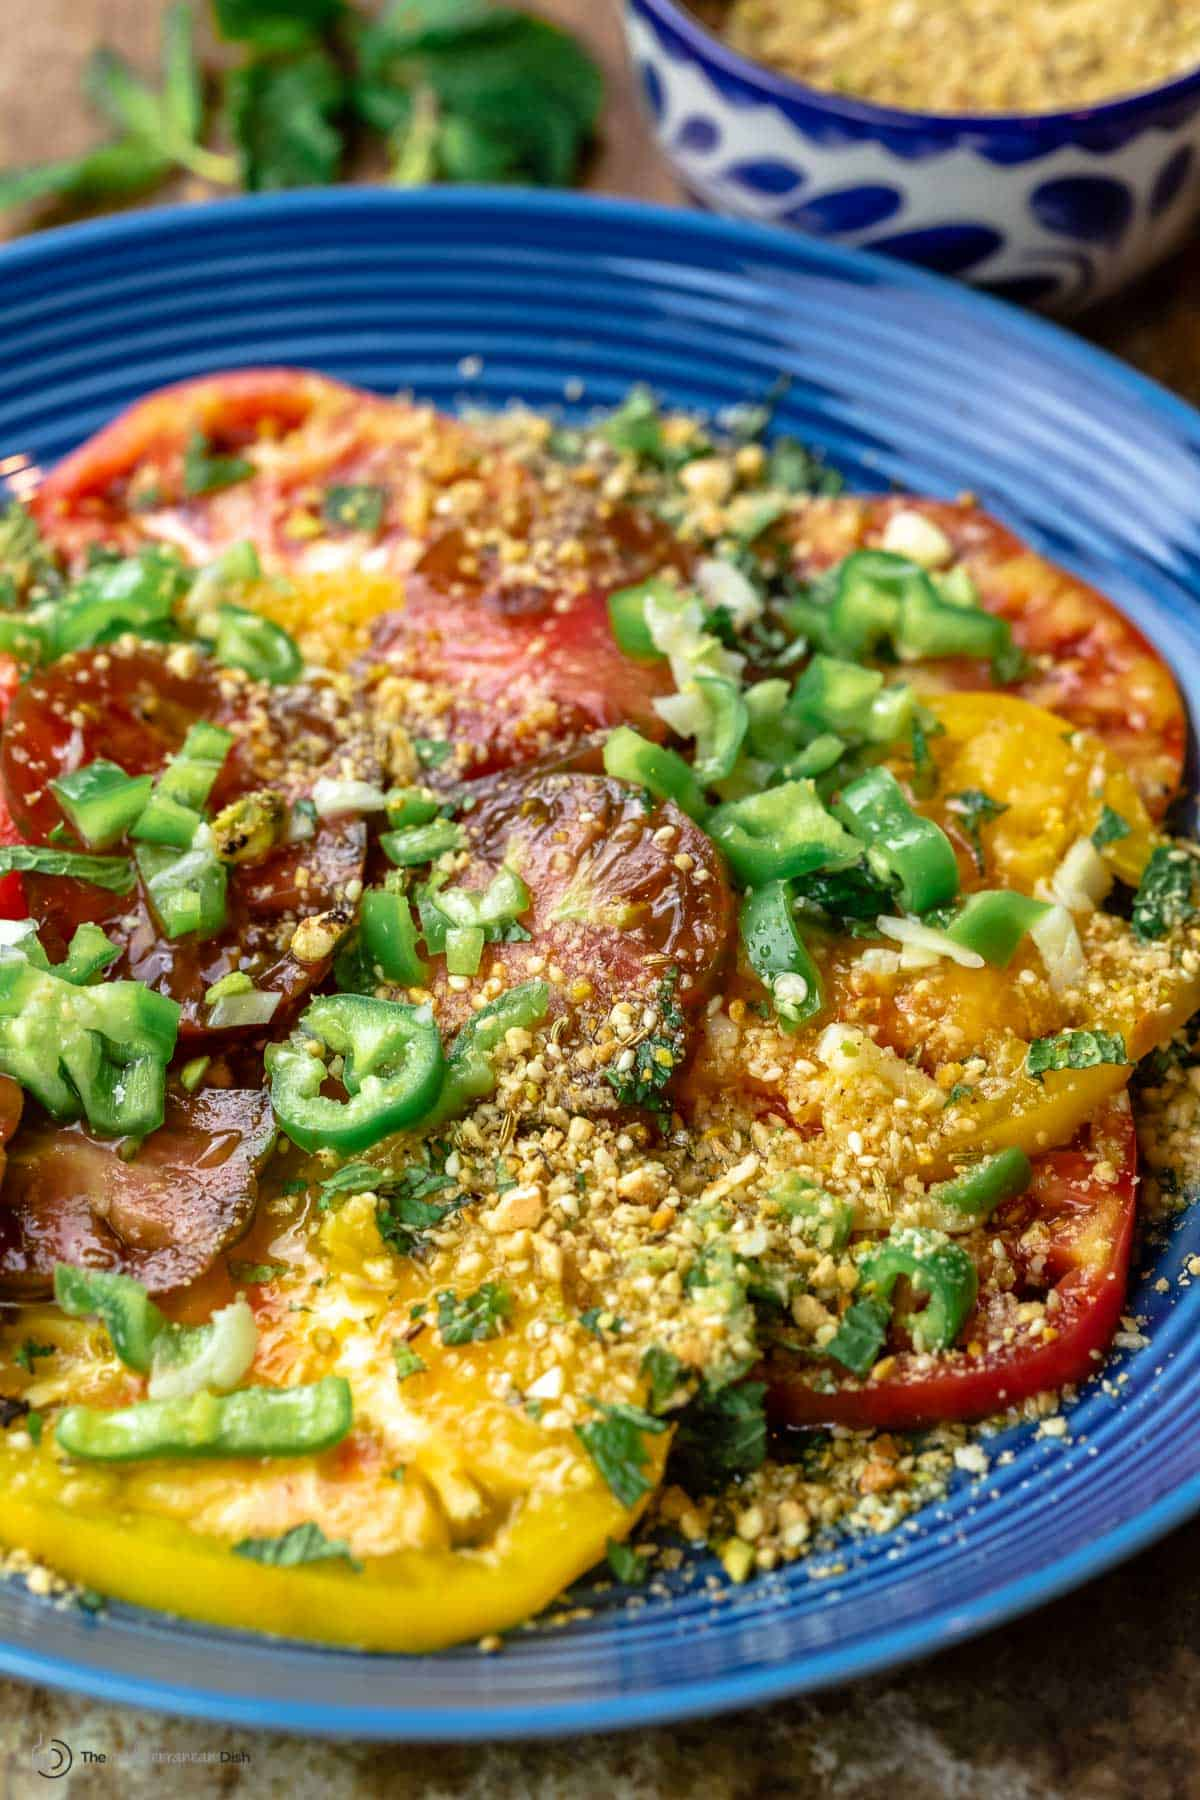 fresh tomato salad with a side of dukkah in a bowl